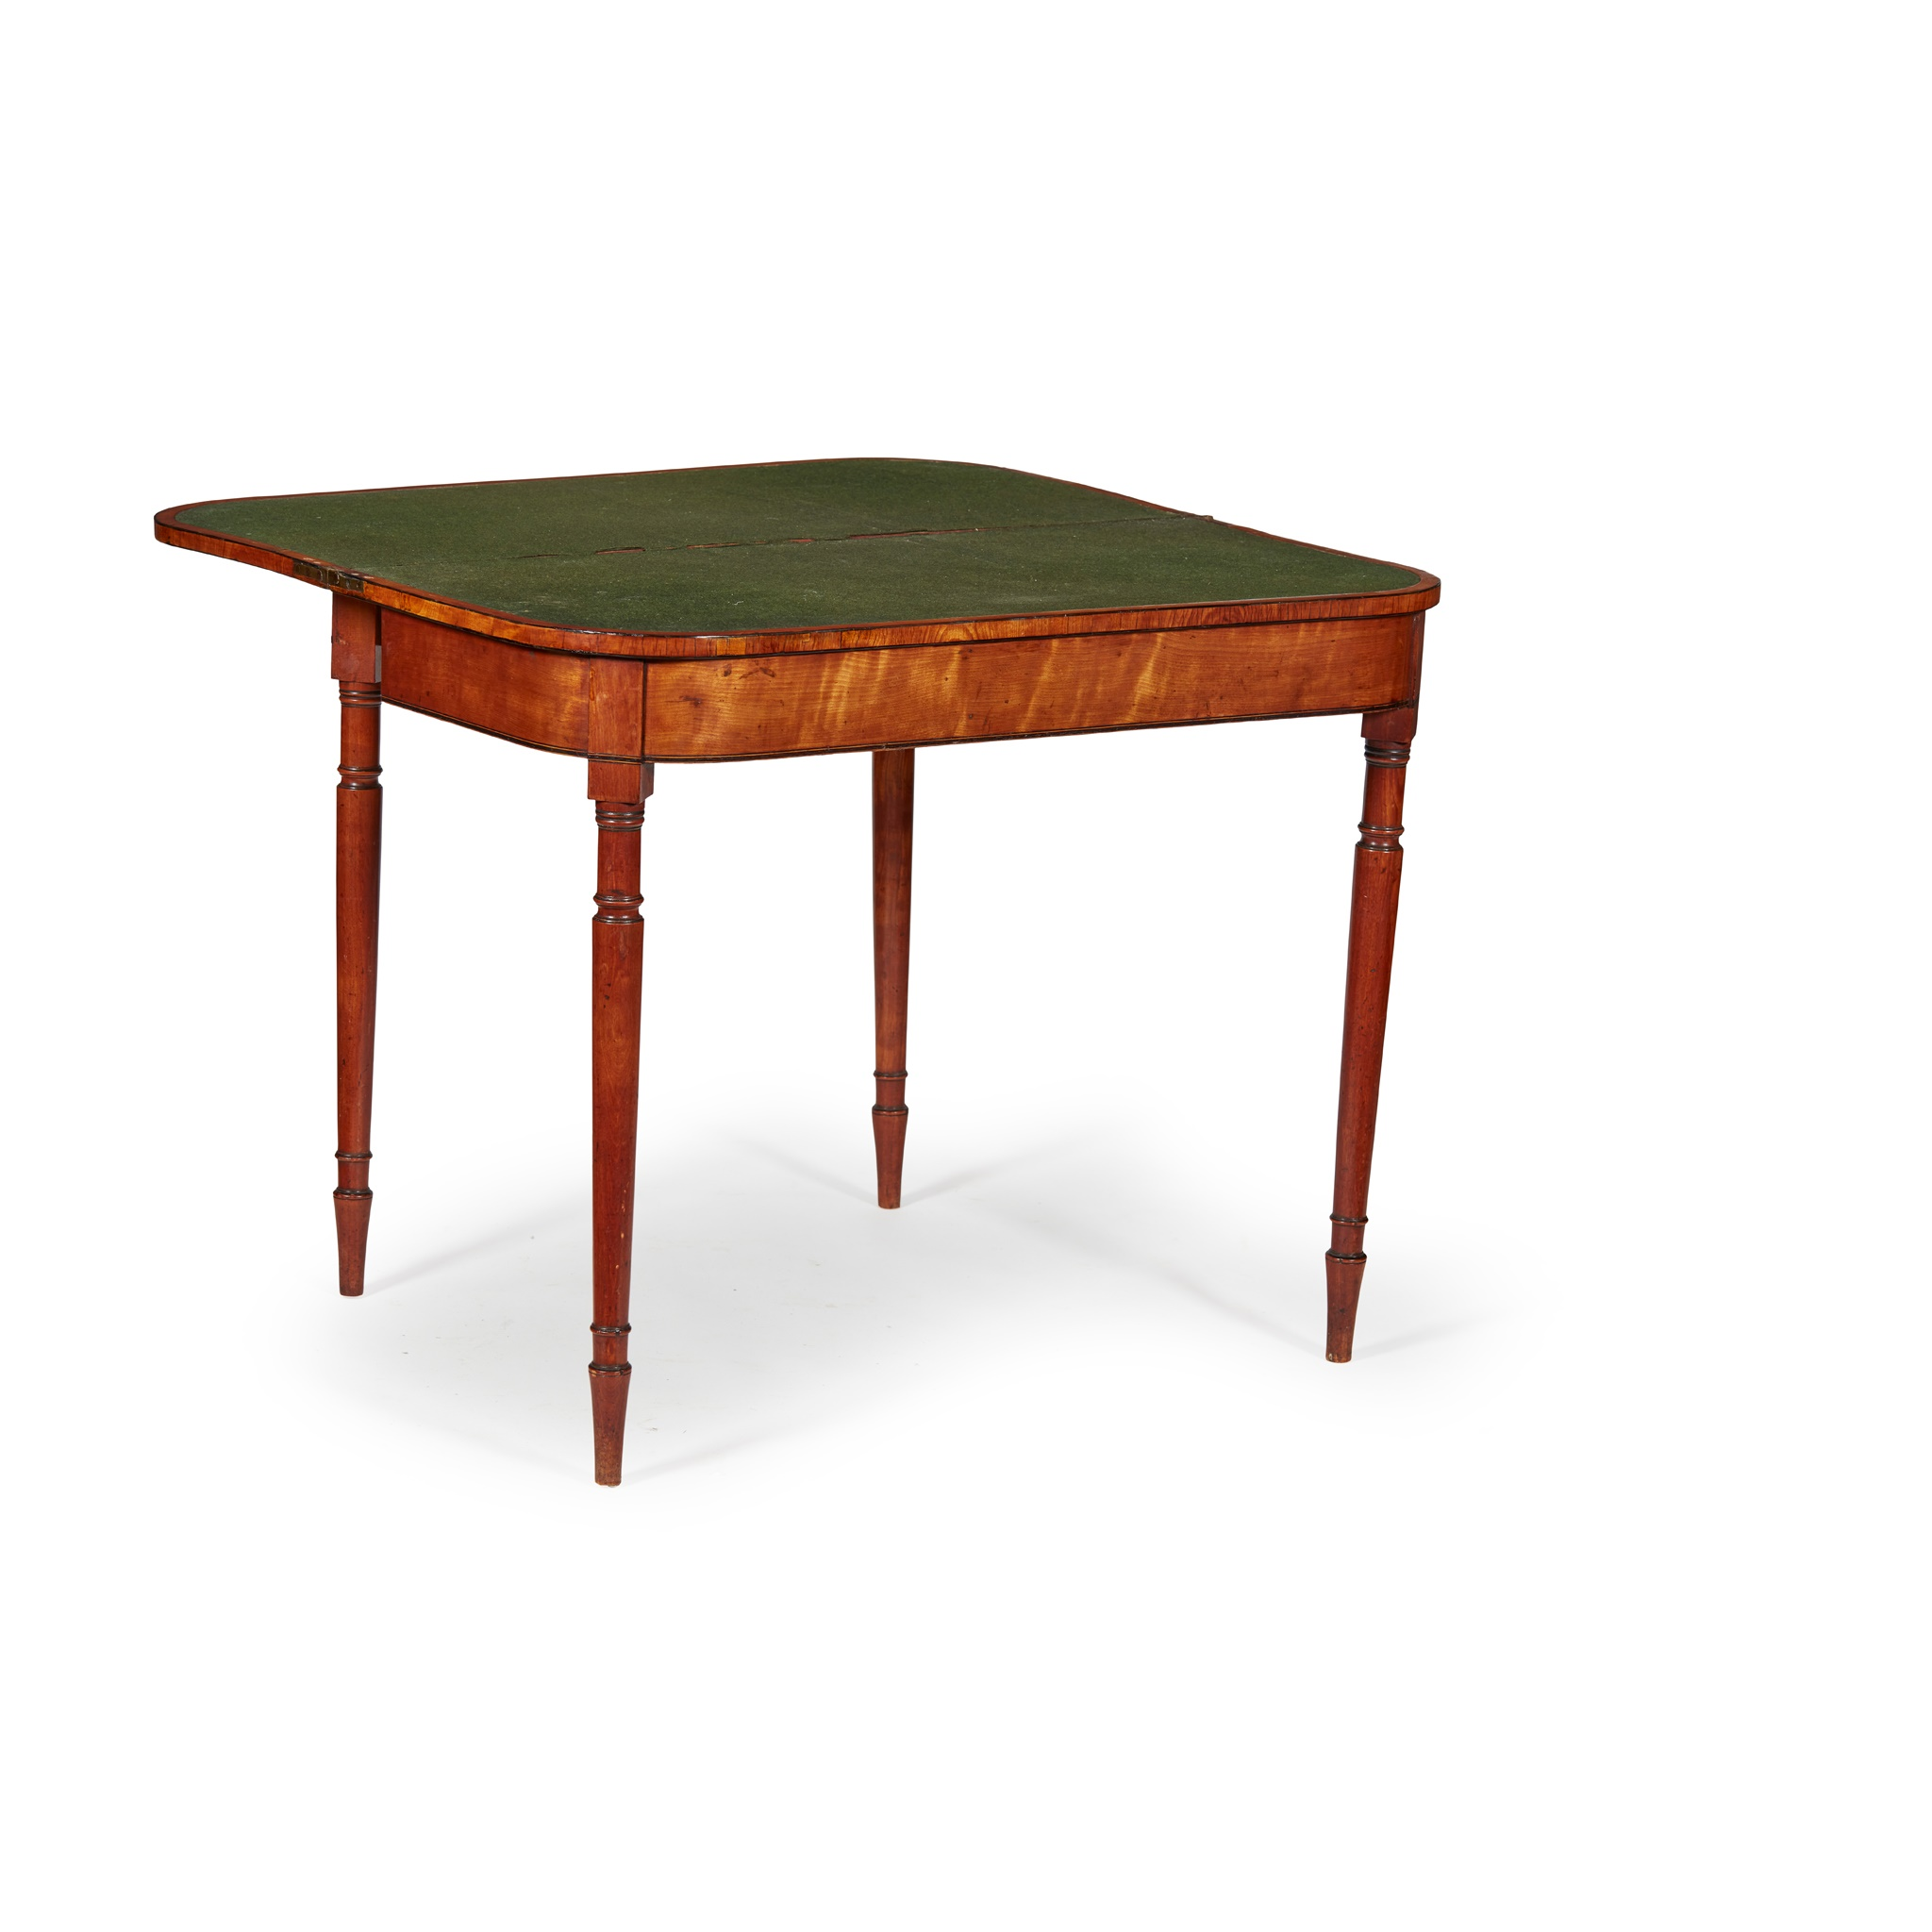 GEORGE III SATINWOOD AND EBONY CARD TABLE LATE 18TH CENTURY - Image 2 of 2